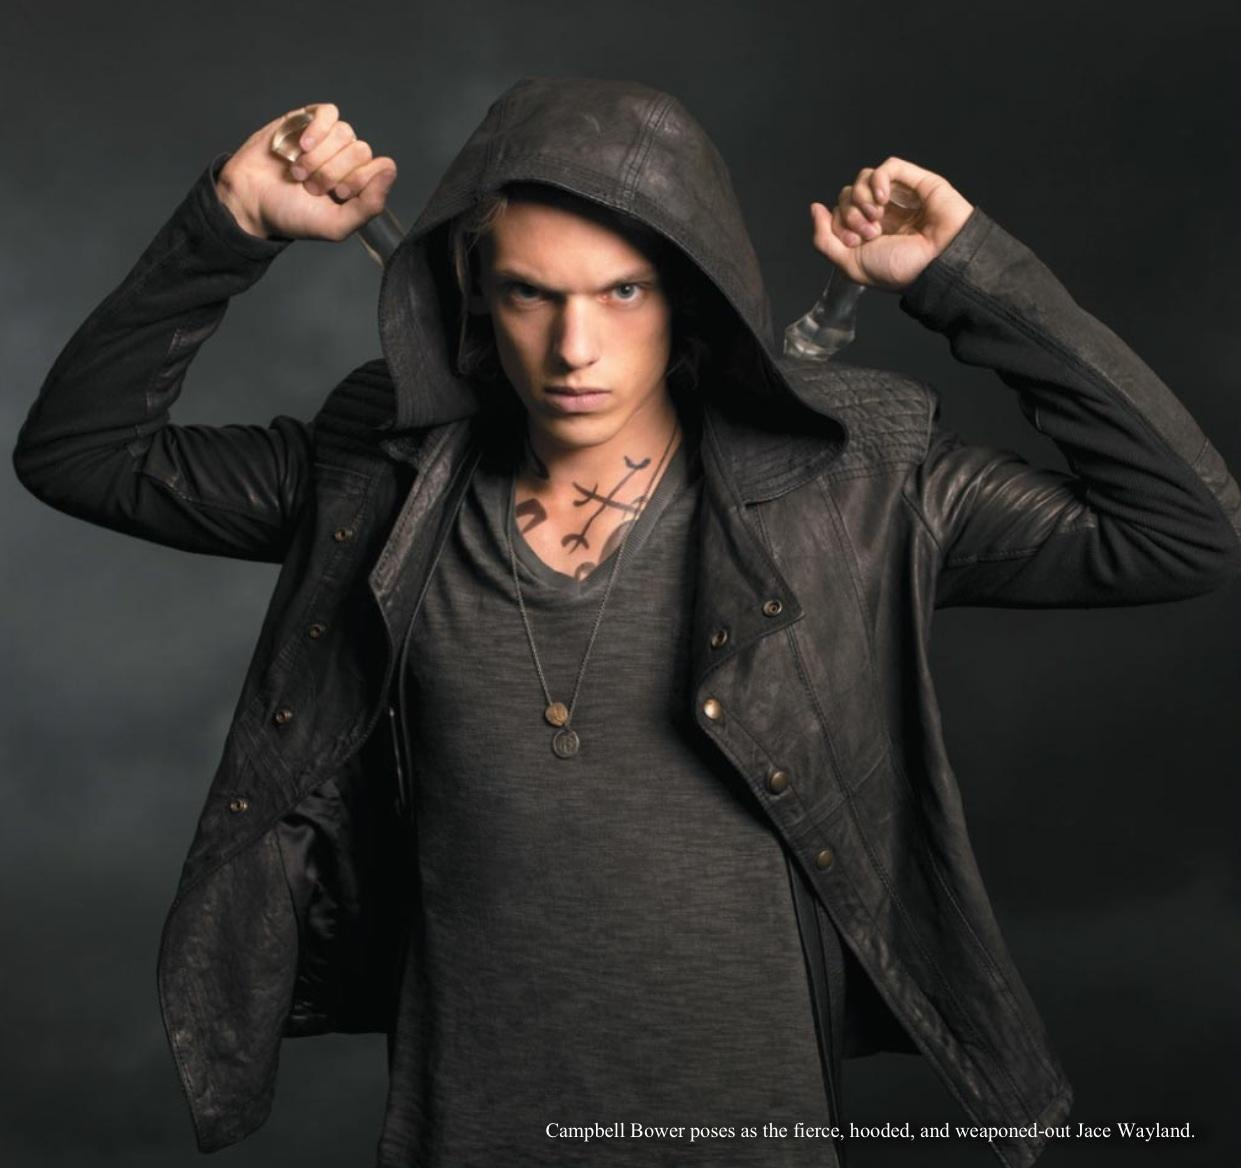 Jace from Mortal Instruments